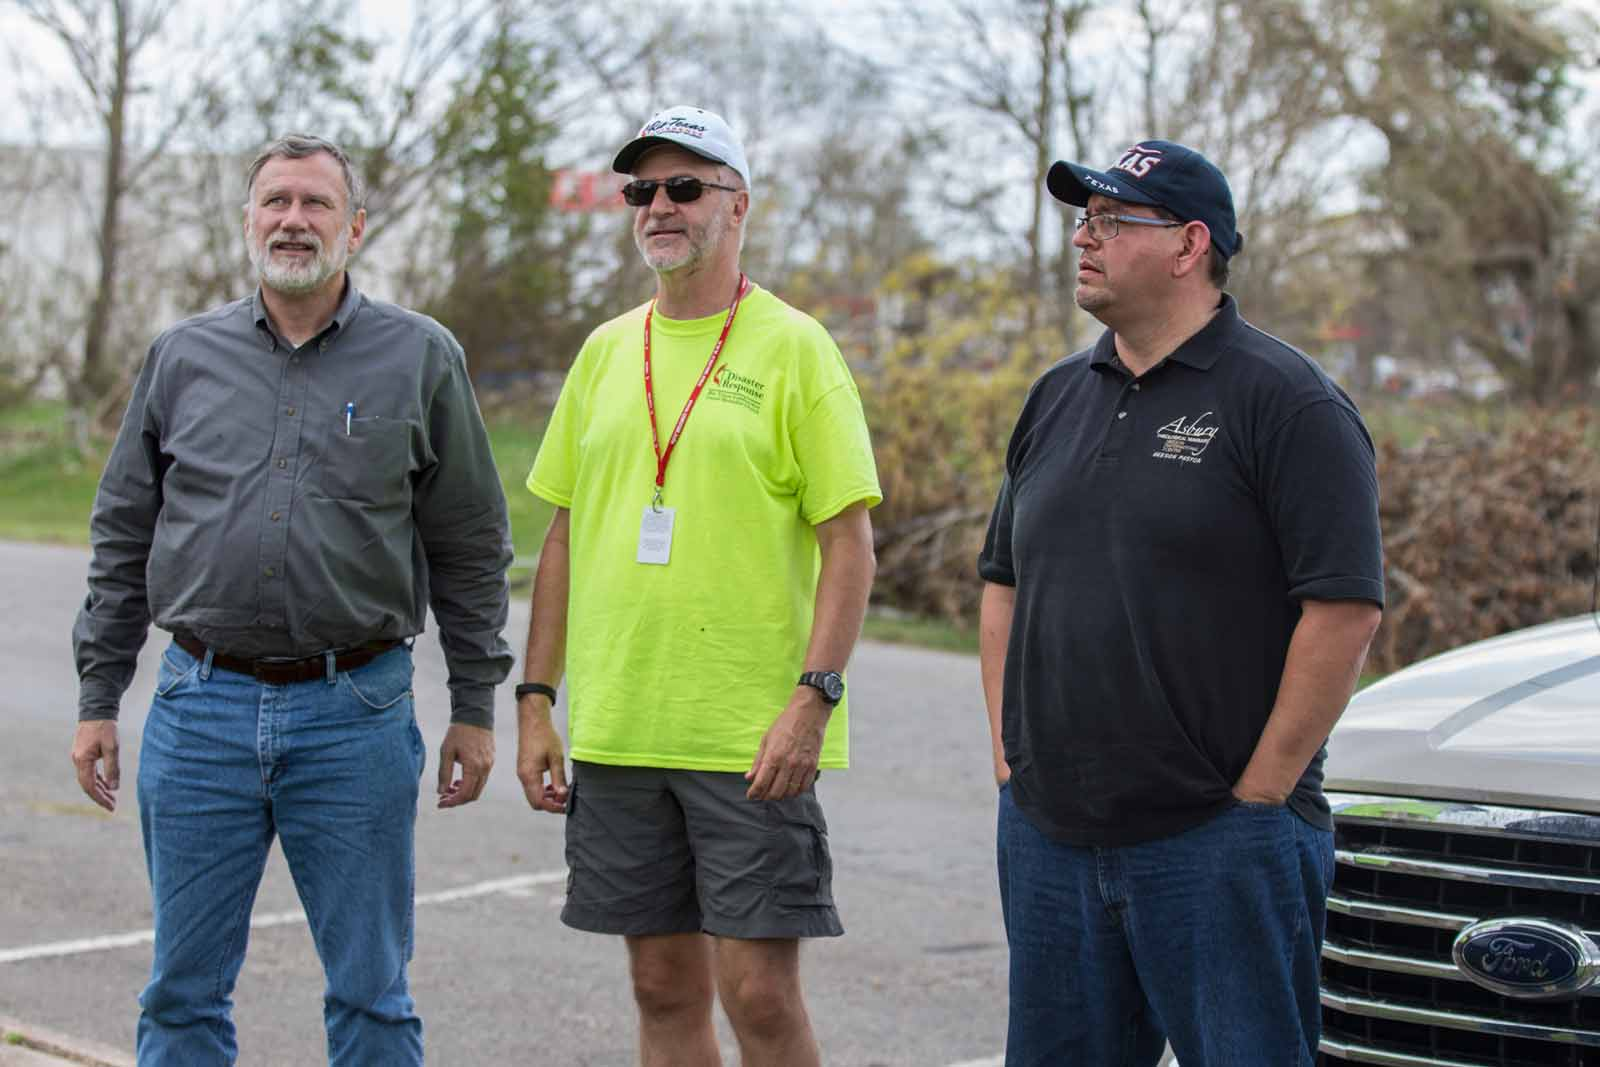 Robert Schnase, Bishop of the Rio Texas Annual Conference, surveys damage in Refugio, Texas with Rev. Jason Fry, pastor of Grace UMC, Corpus Christi; and Rev. Robert Lopez, Coastal Bend District Superintendent.